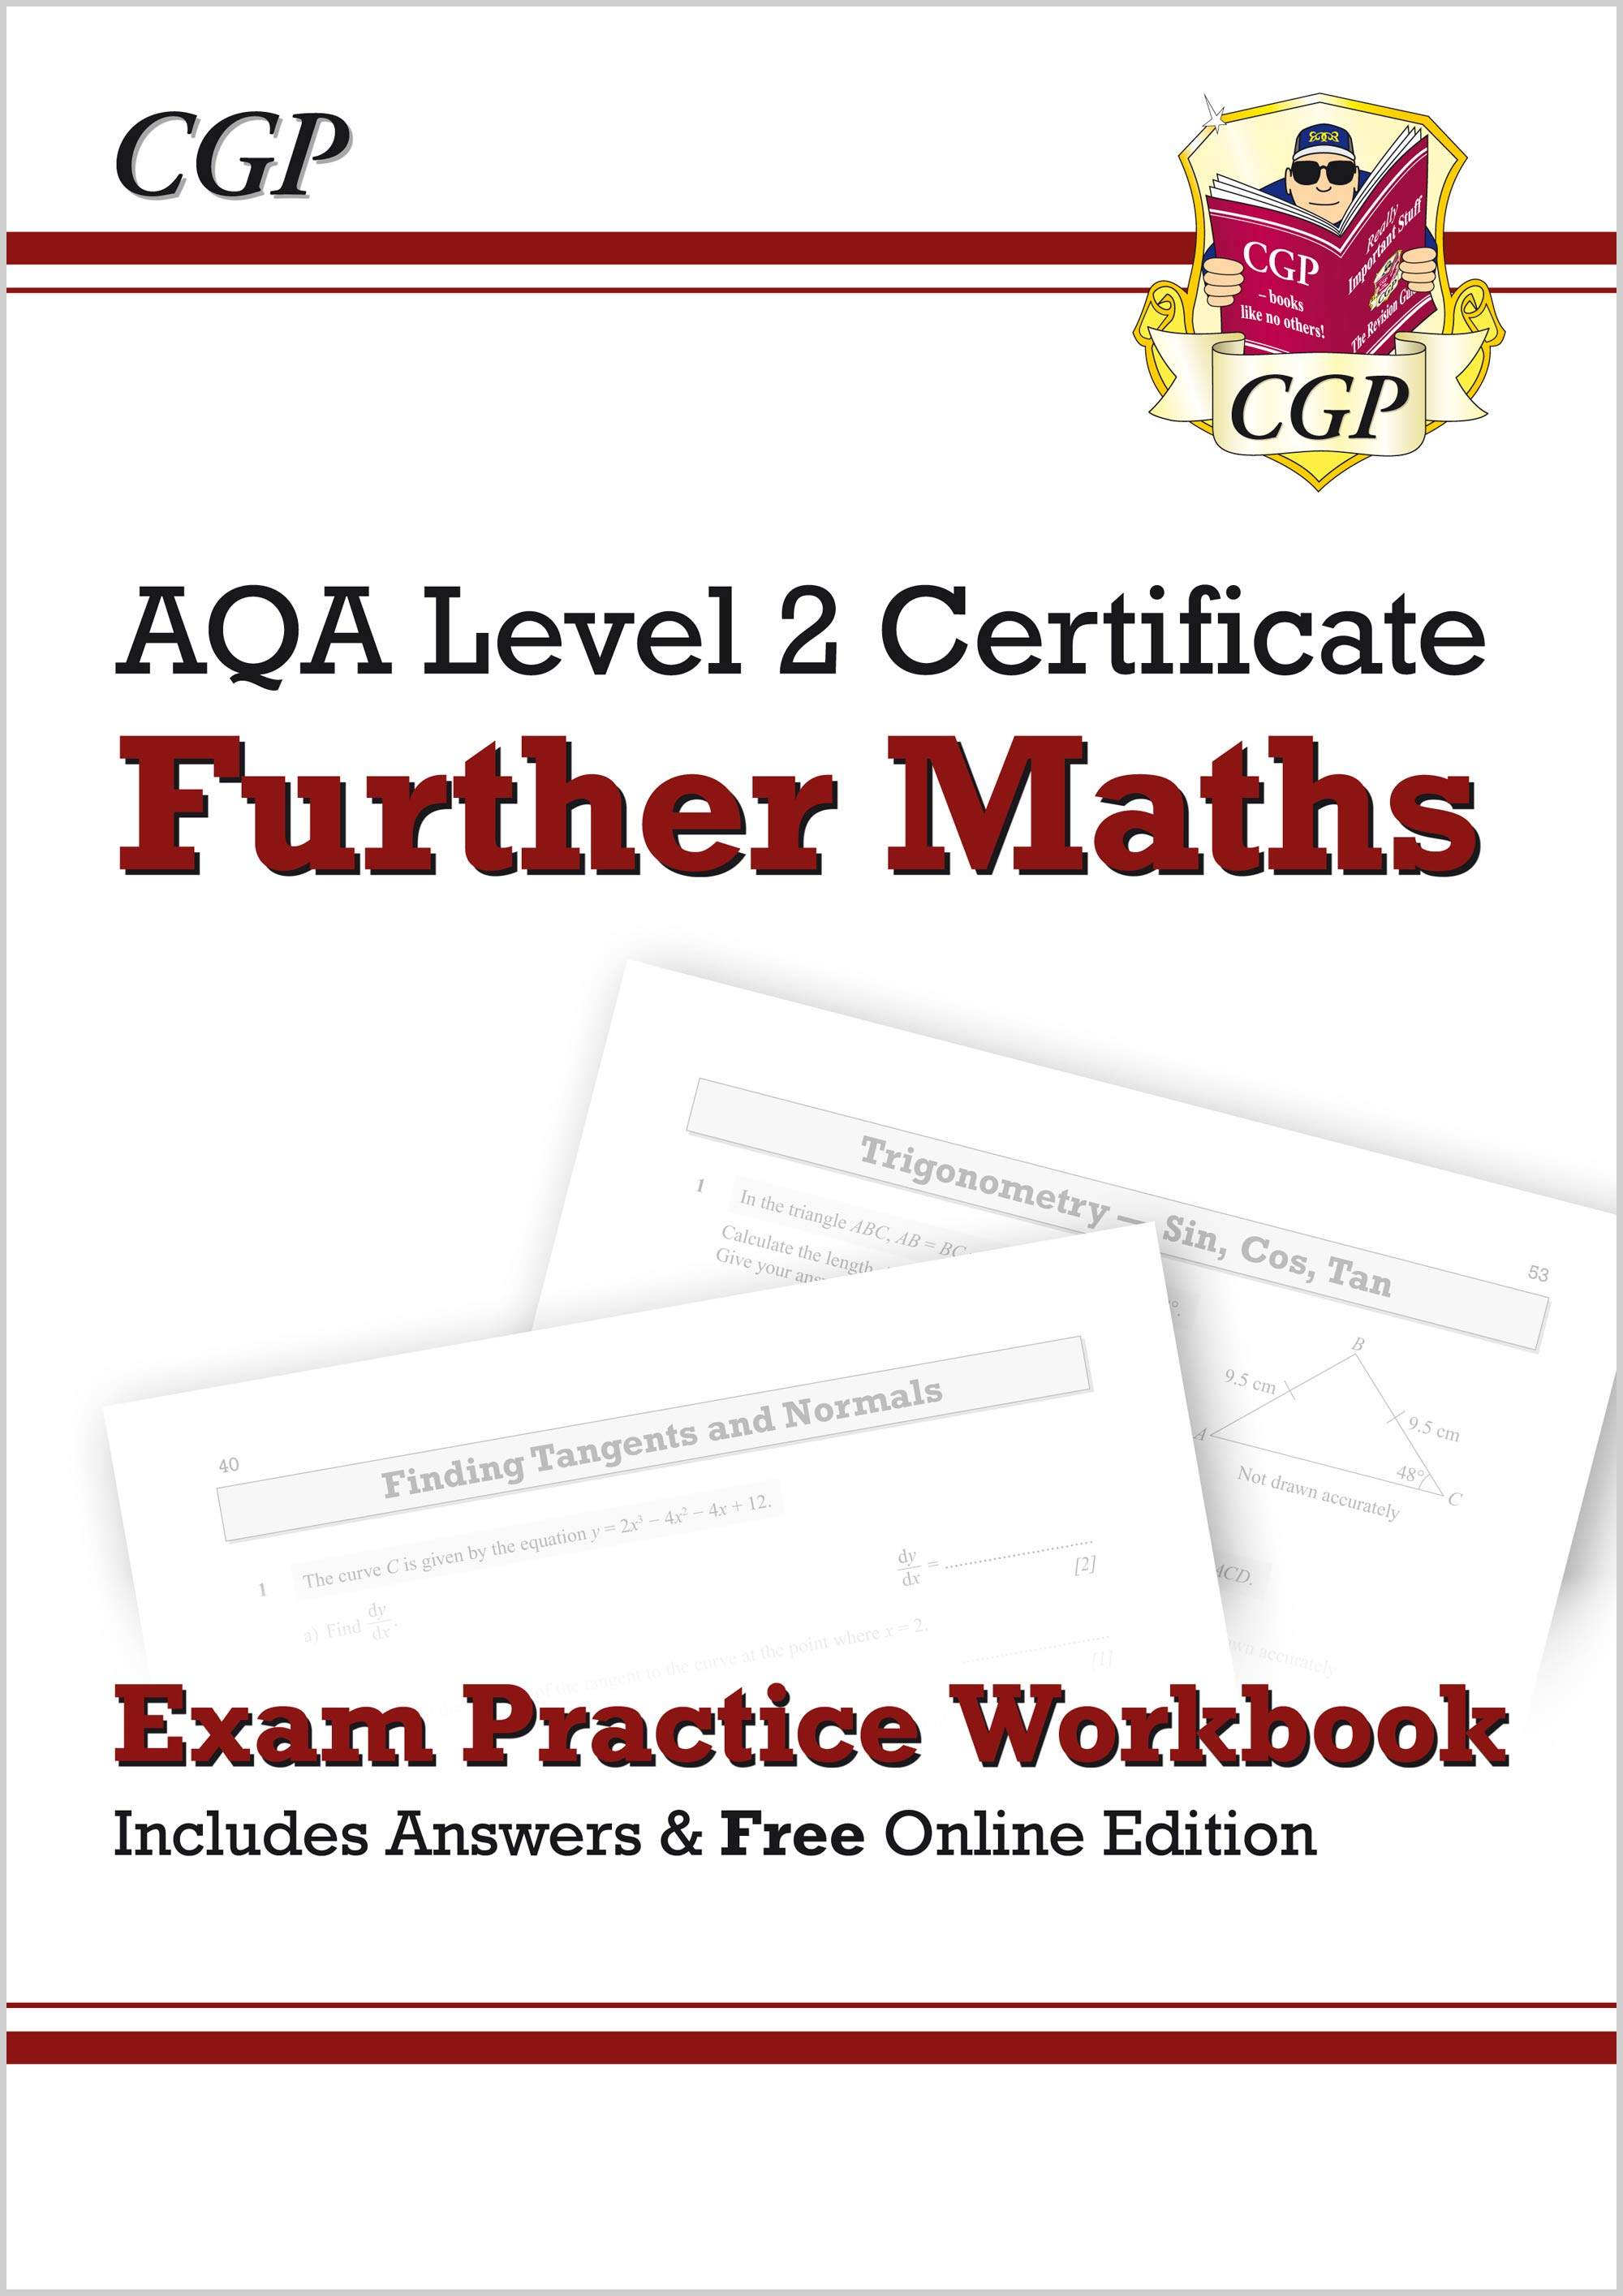 MAQI41 - AQA Level 2 Certificate in Further Maths - Exam Practice Workbook (with ans & online editio